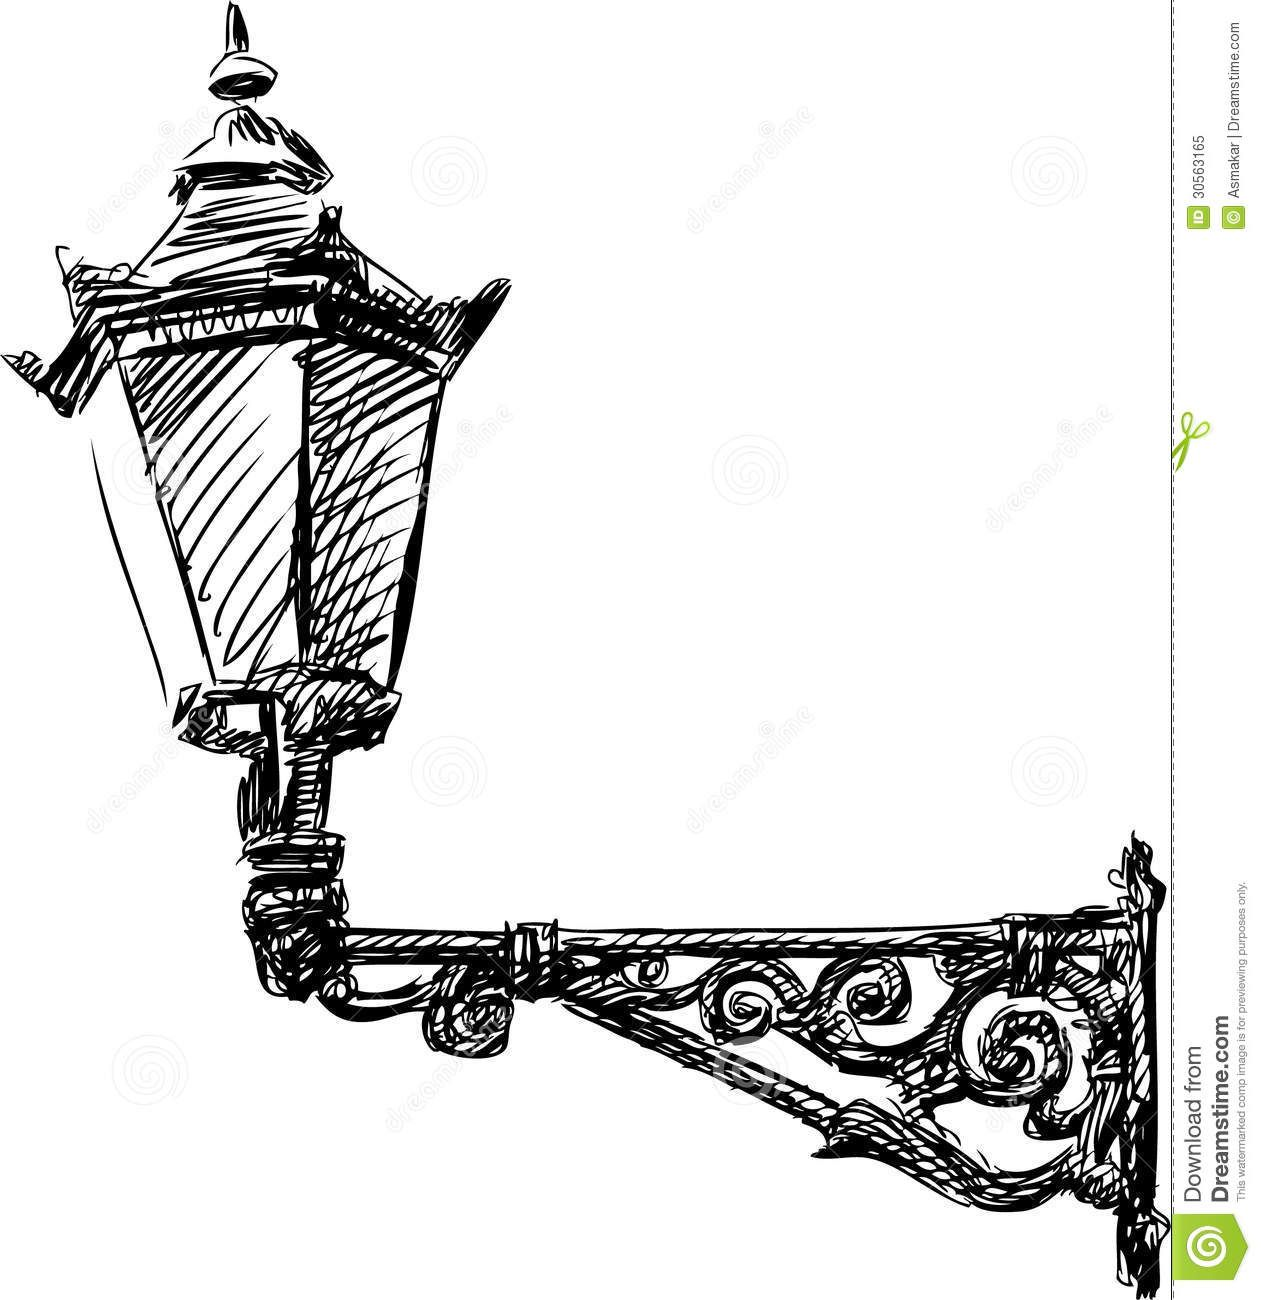 Street Light Royalty Free Stock Photo - Image: 30563165 | Drawings ... for Street Light Sketch  111bof